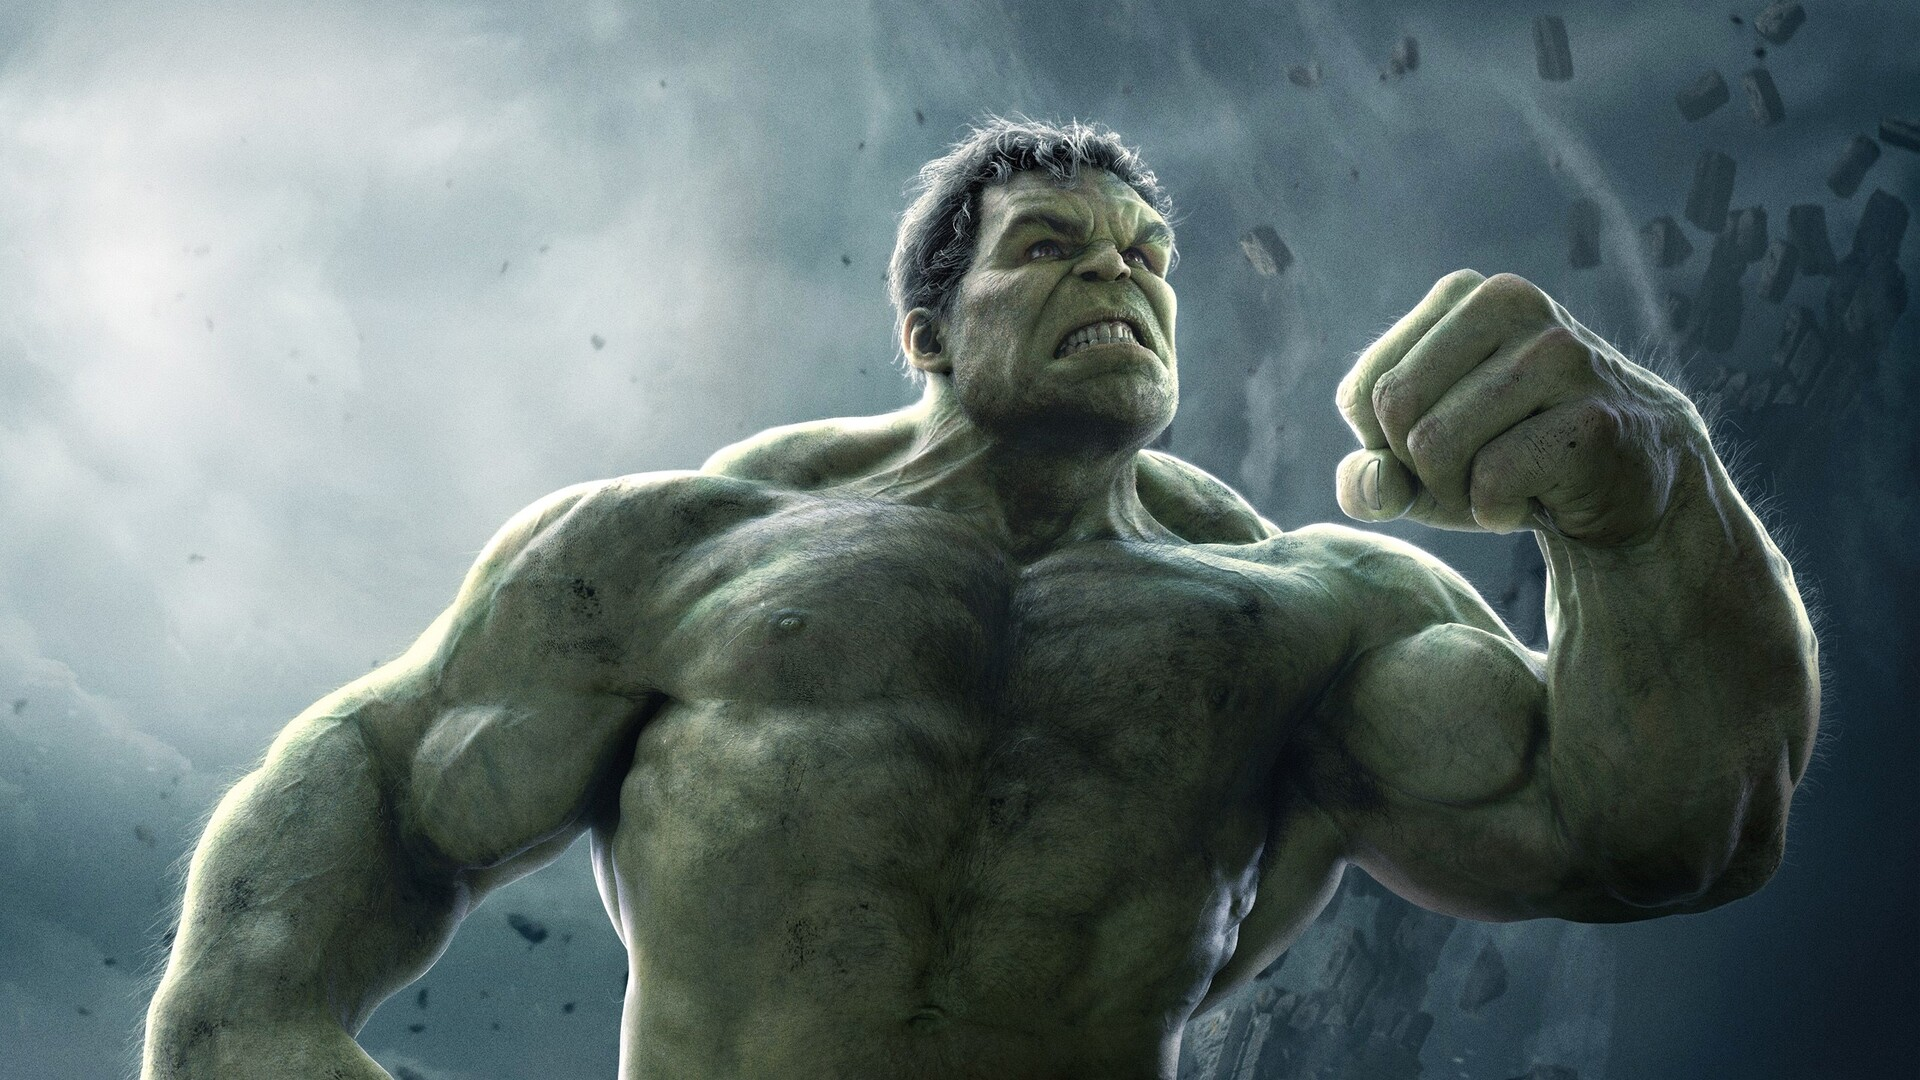 1920x1080 hulk in avengers age of ultron laptop full hd - Hulk hd images free download ...